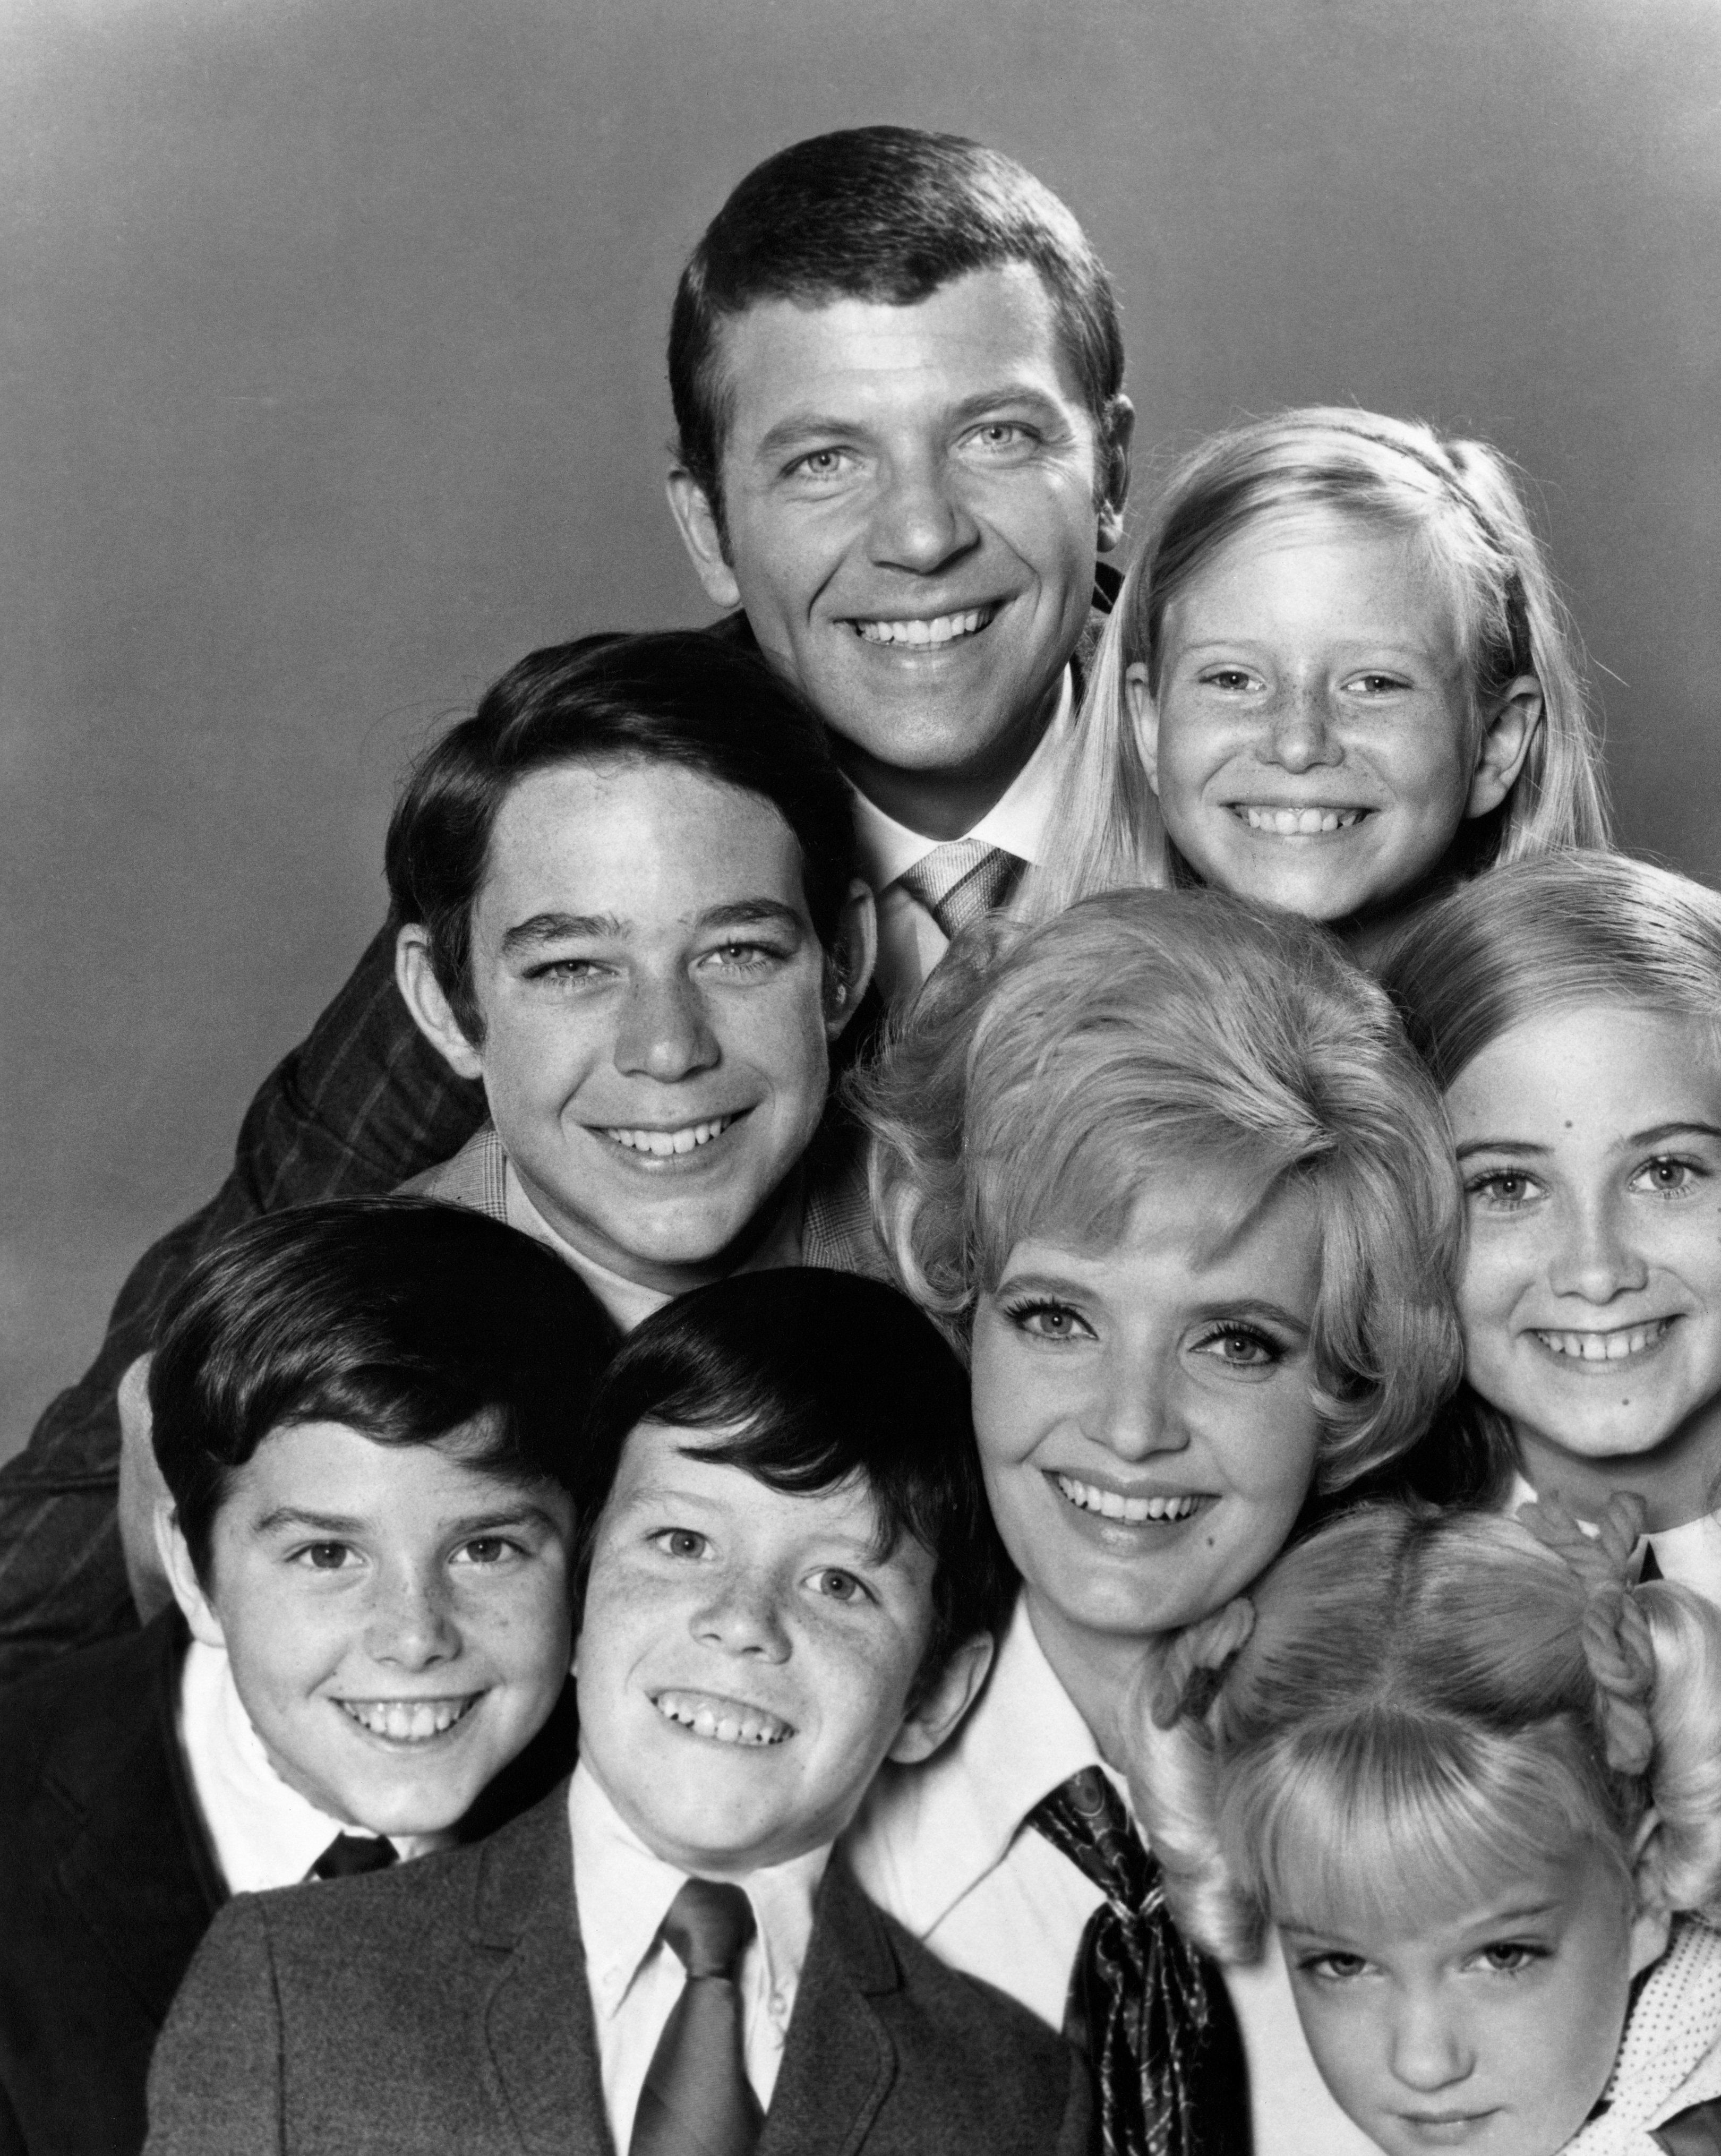 Publicity handout of the cast of 'The Brady Bunch' television series, all beaming with their heads stacked on top of each other. Ca. 1970s. (Photo by �� John Springer Collection/CORBIS/Corbis via Getty Images)